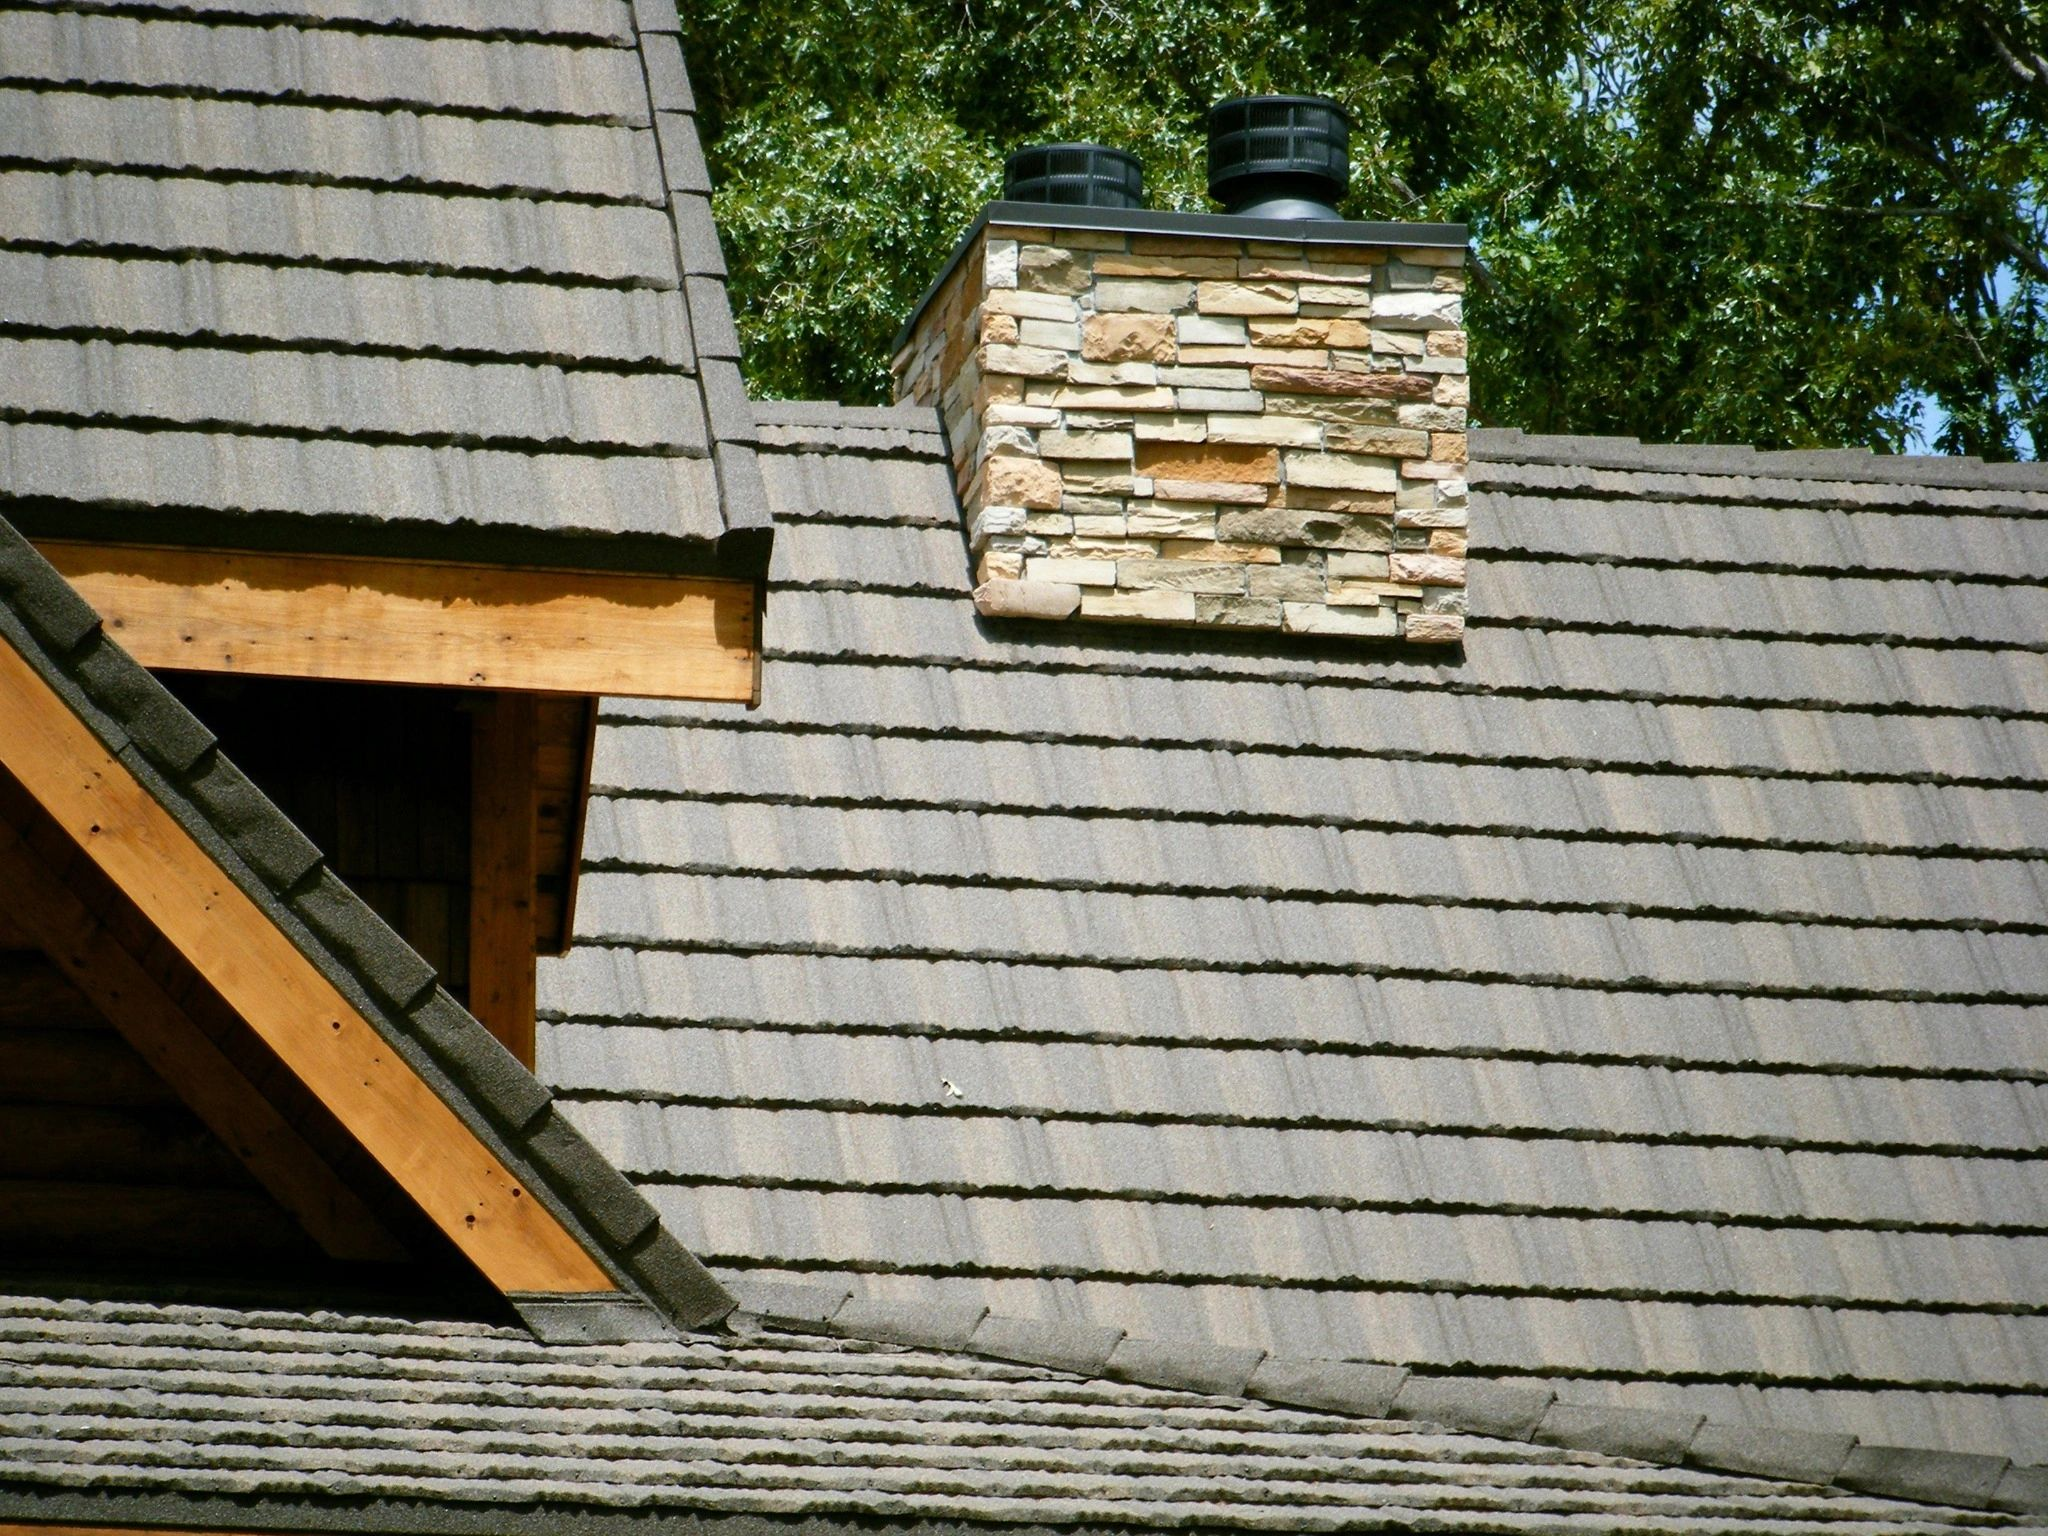 Bozeman Metal Roofing has stood the test of time since 1978.